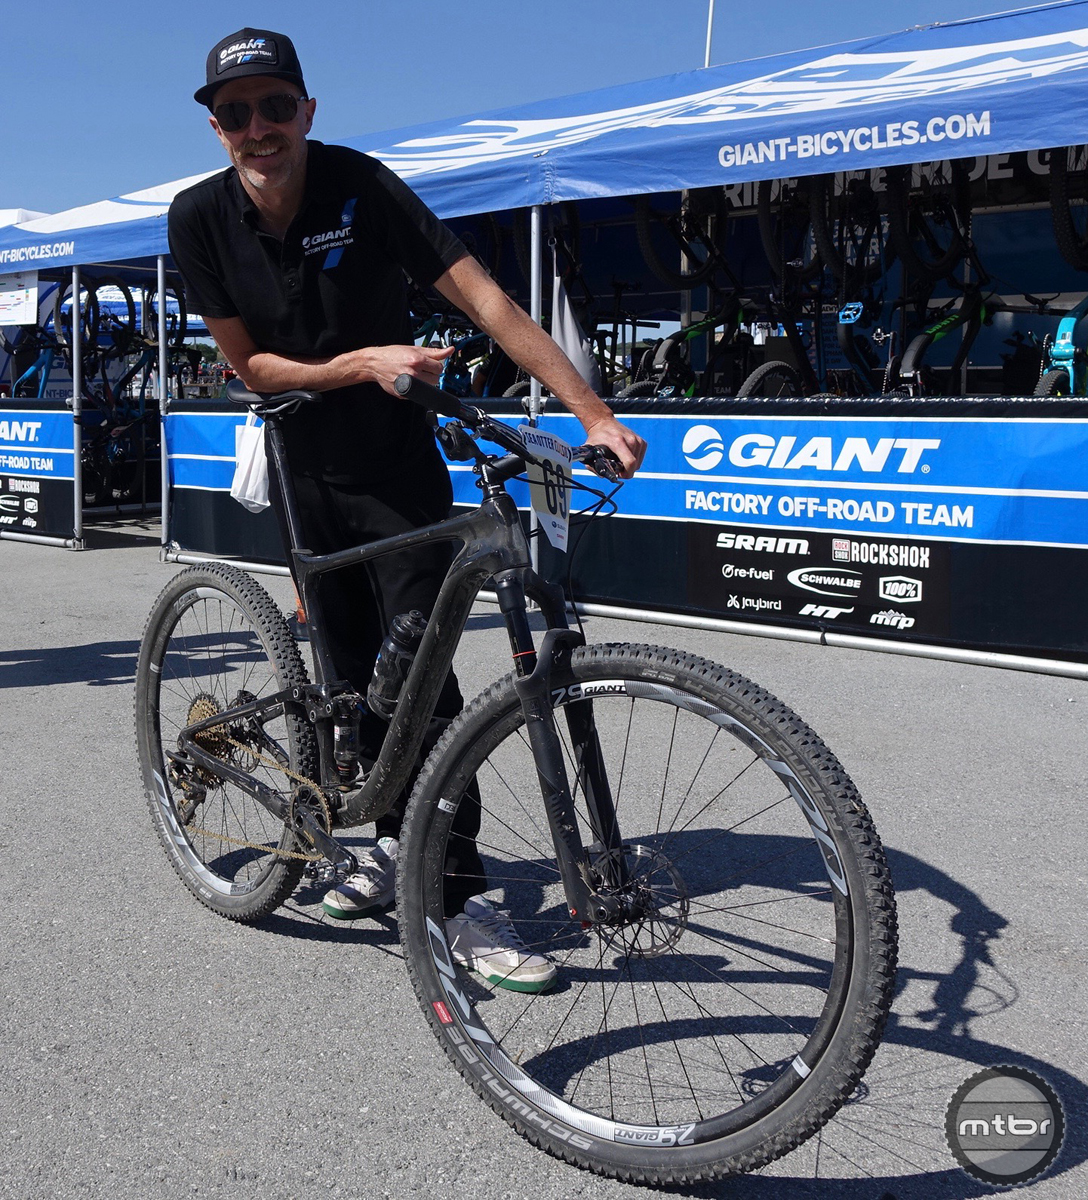 Giant's Anthem prototype has team pro Carl Decker all smiles.